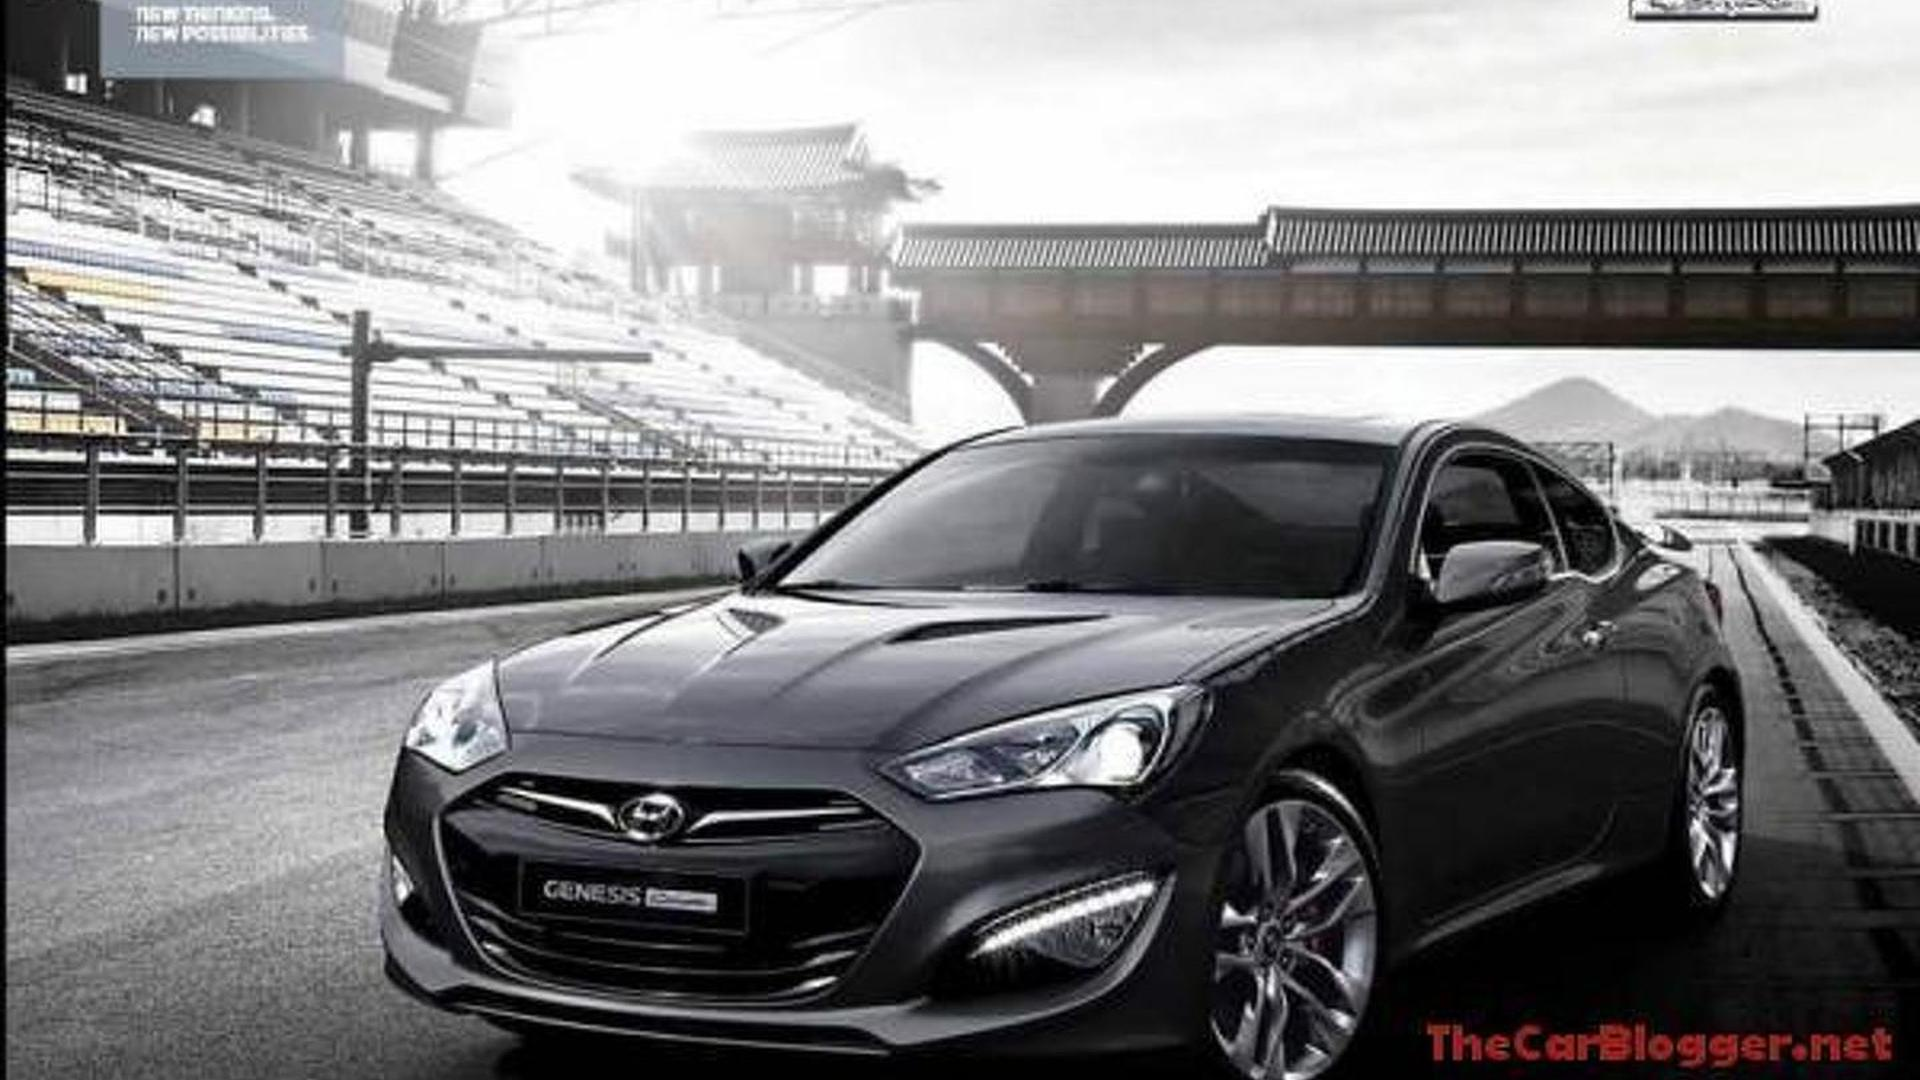 Leaked 2012 Hyundai Genesis Coupe image is a fake